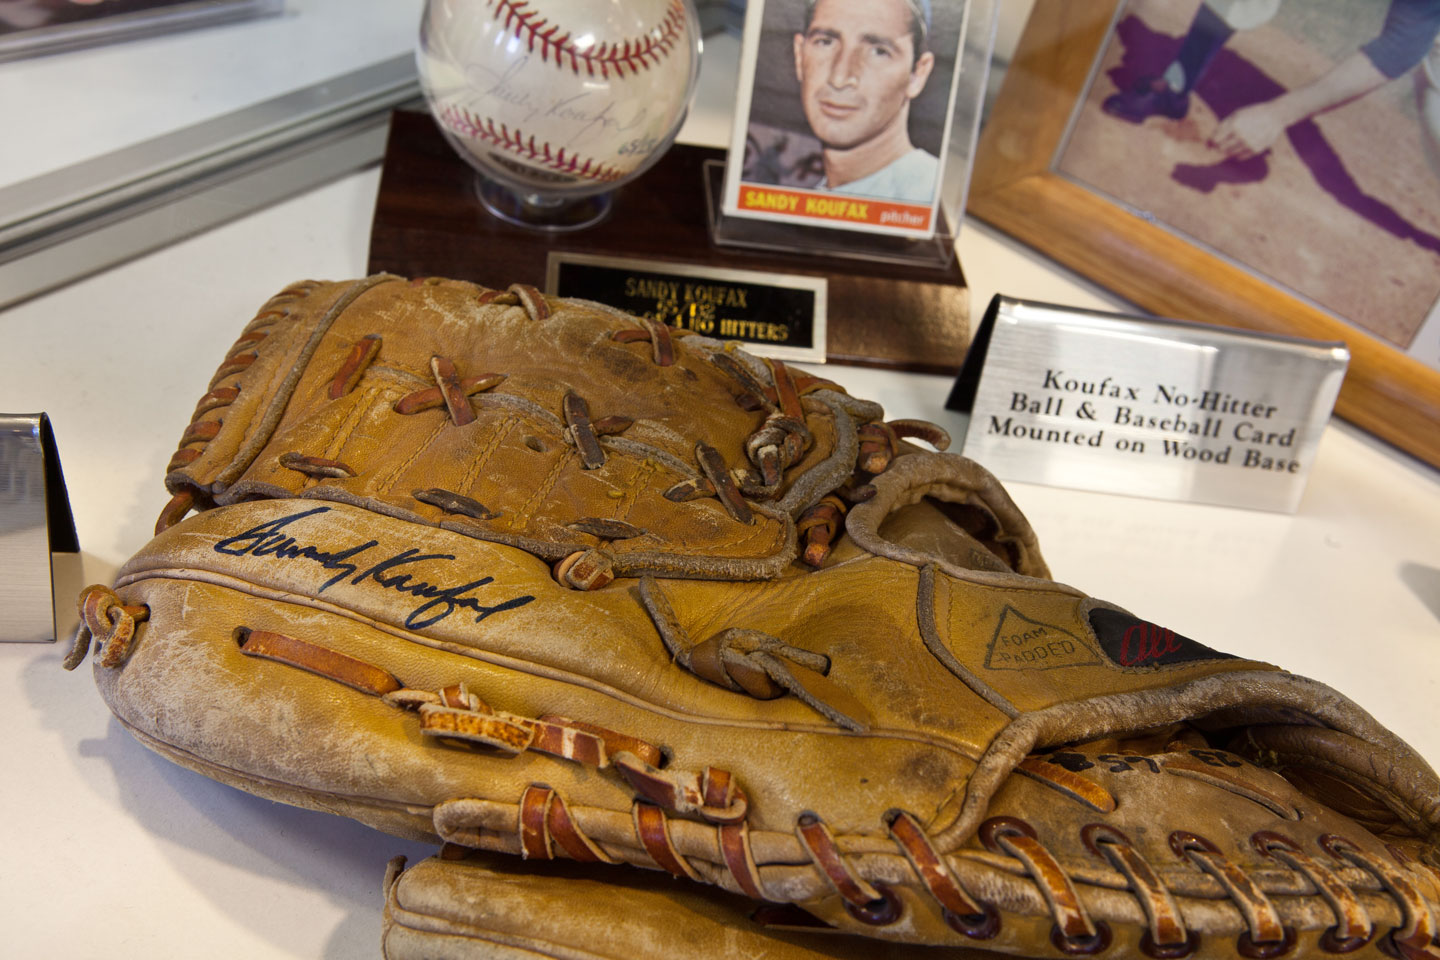 Sandy Koufax Glove and Baseball